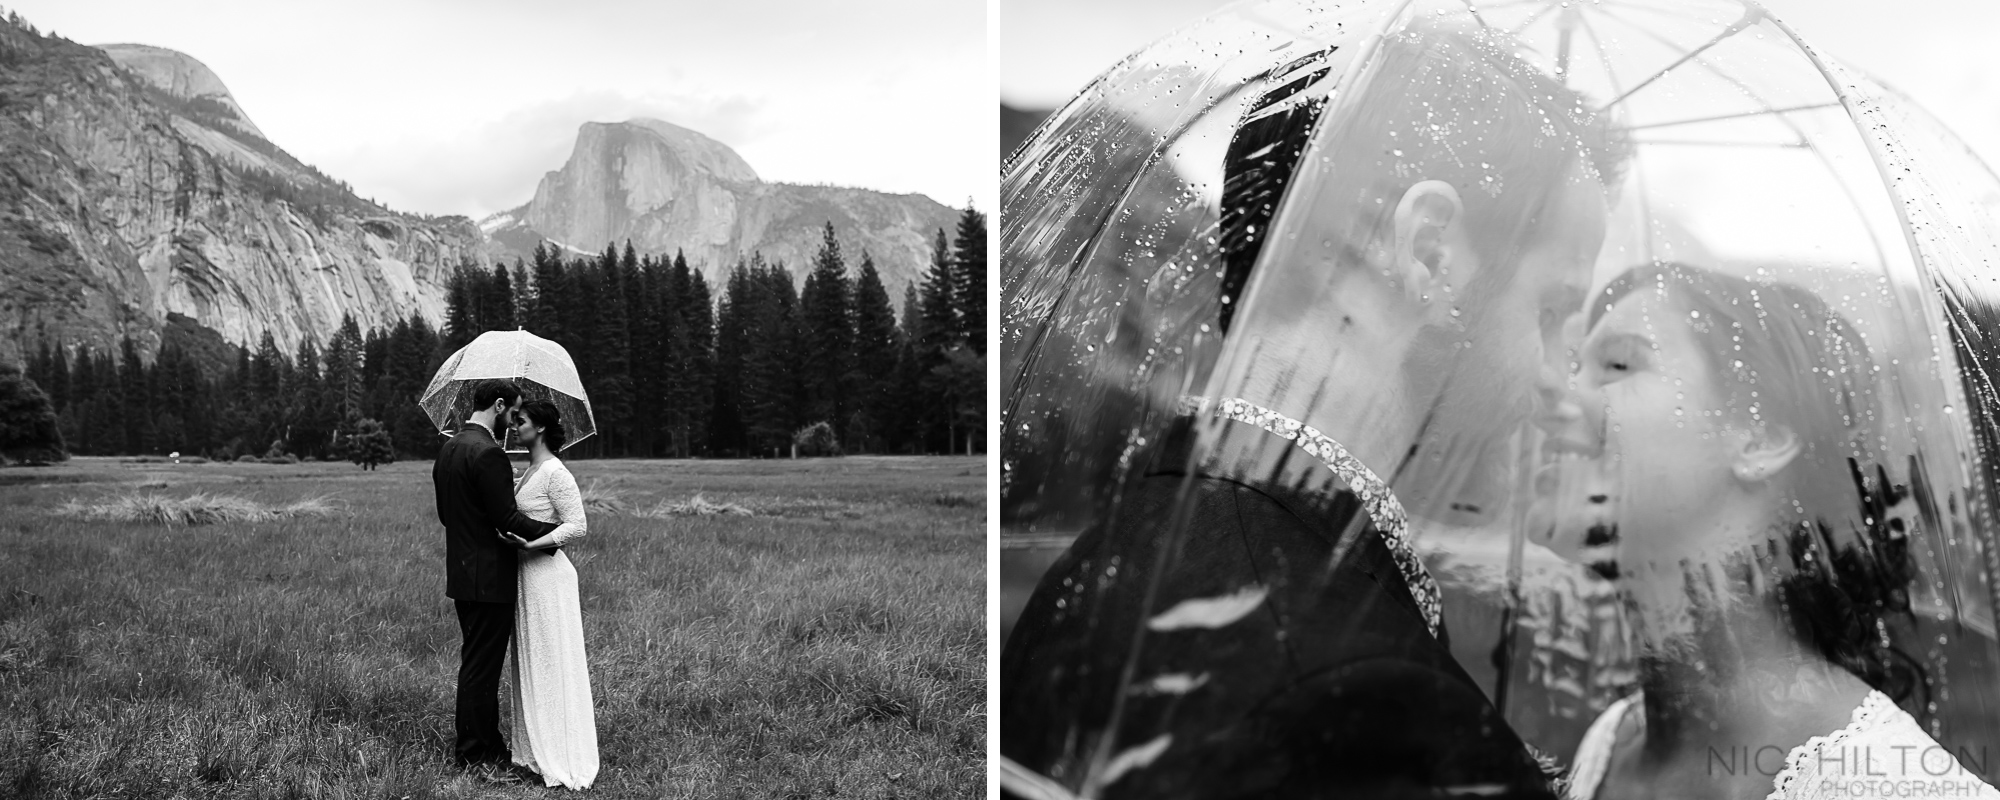 Half-Dome-Yosemite-Rainy-Elopement.jpg